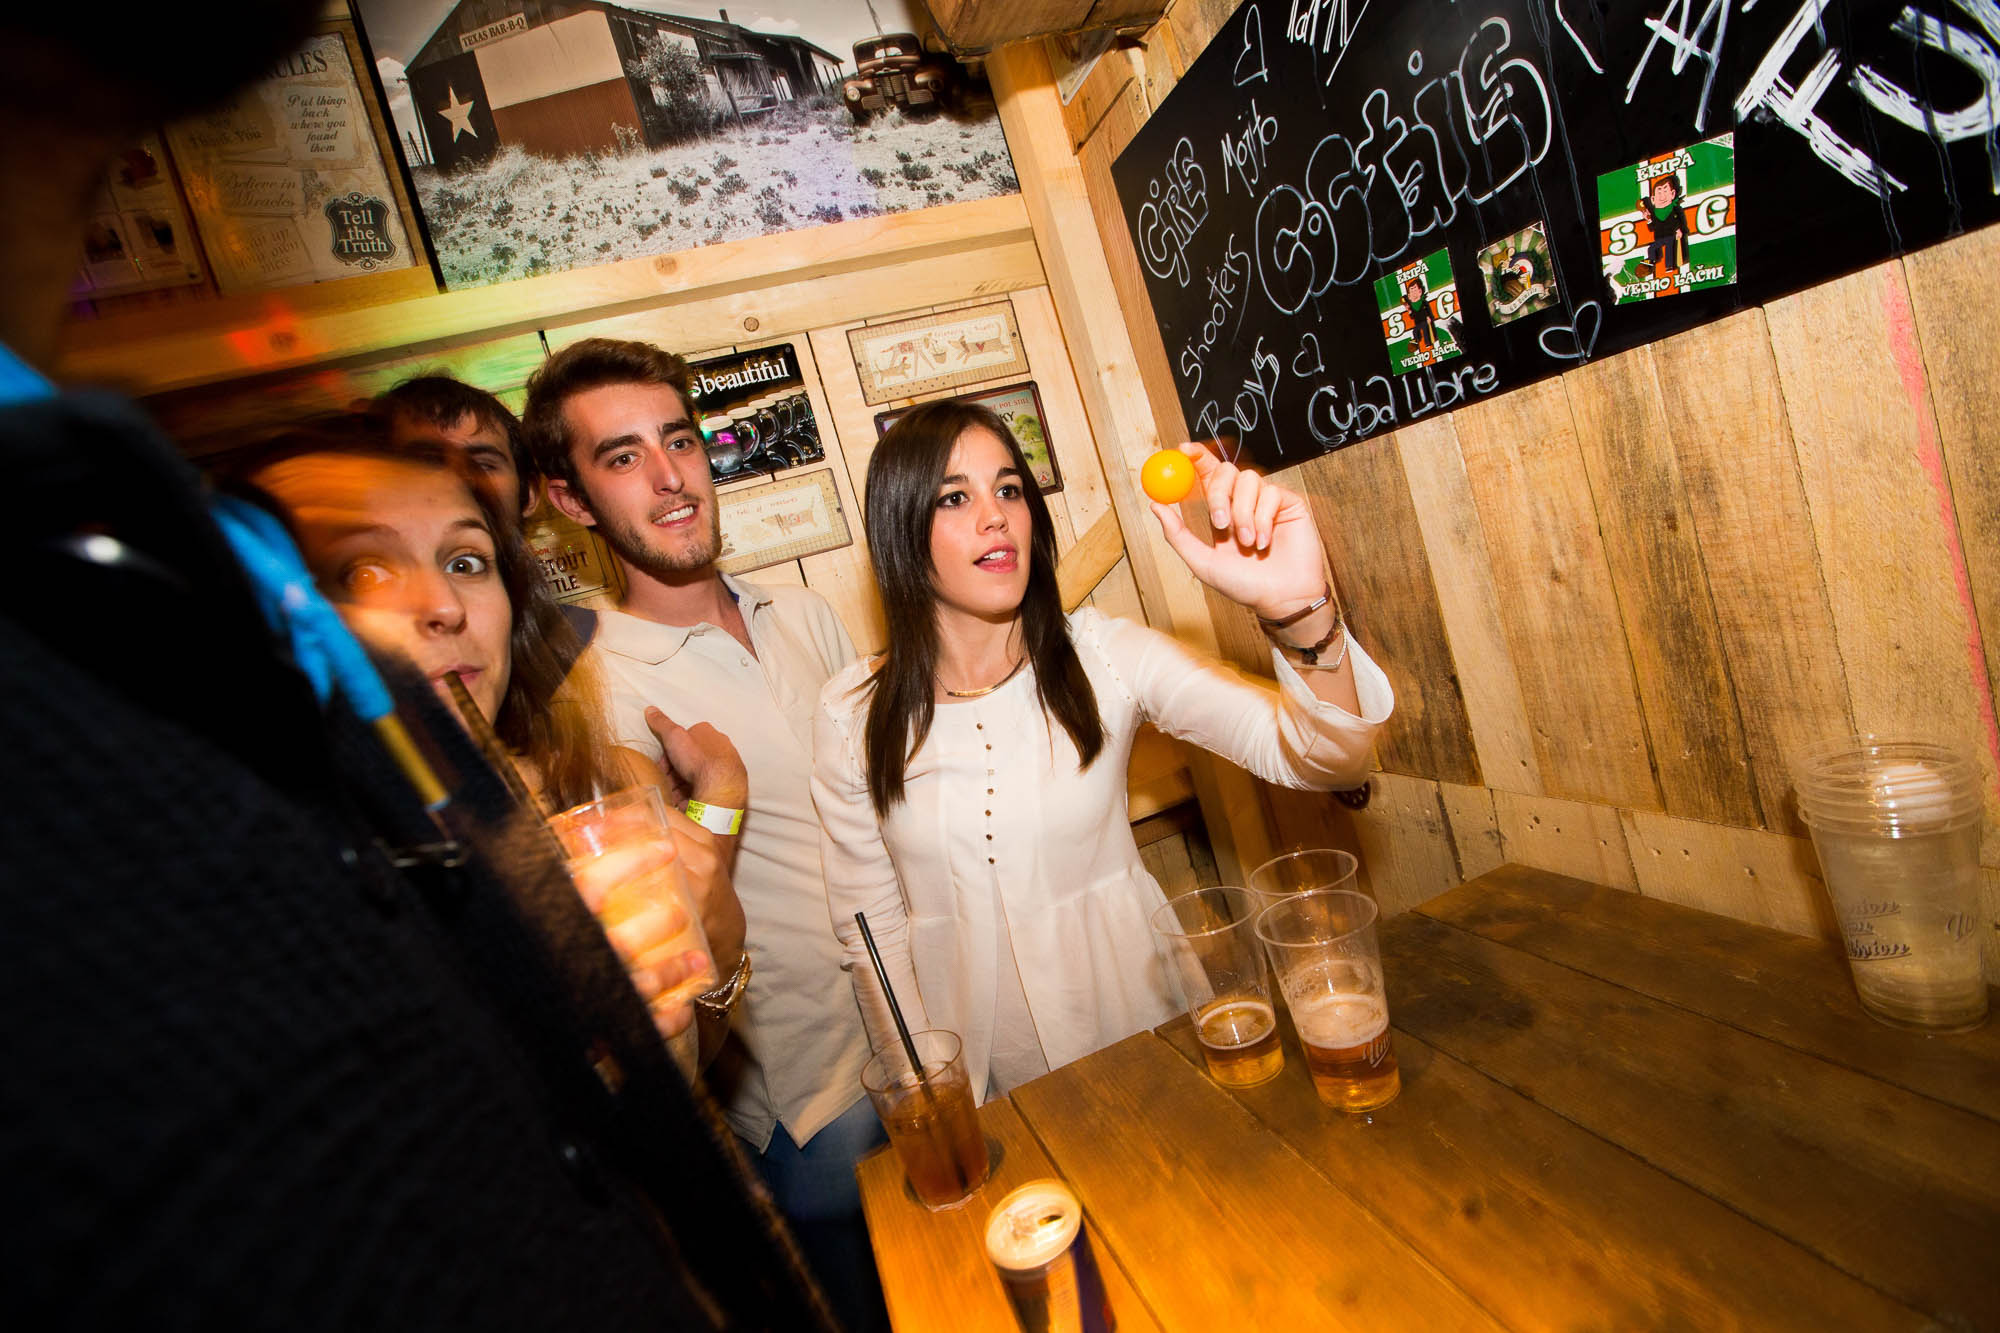 Playing beer pong is always a great pub crawl idea